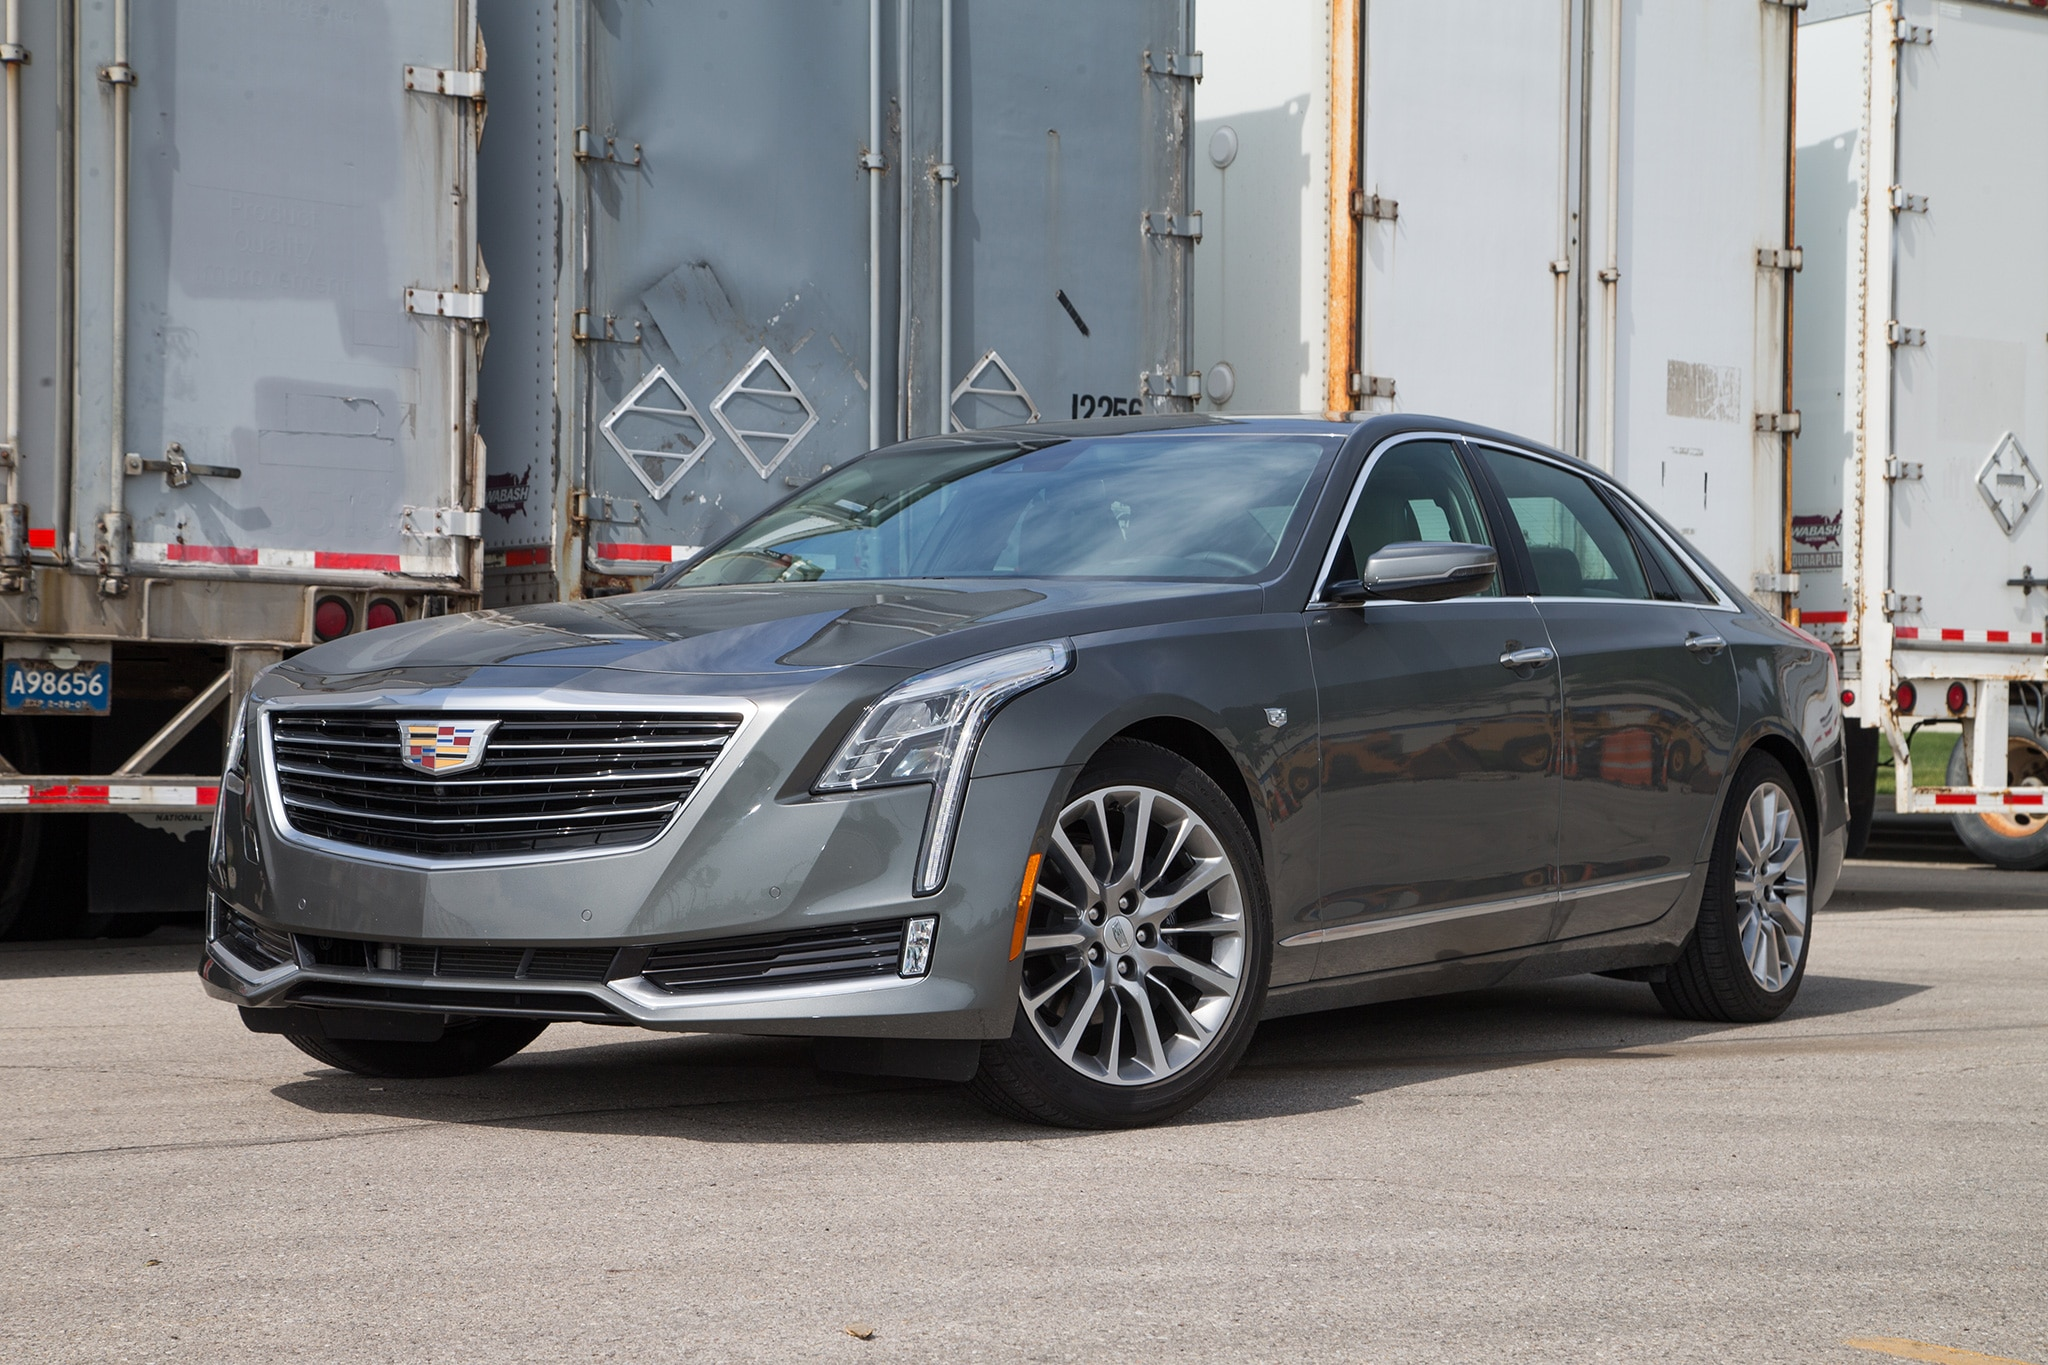 2016 cadillac ct6 luxury 2 0t one week review and road test automobile magazine. Black Bedroom Furniture Sets. Home Design Ideas